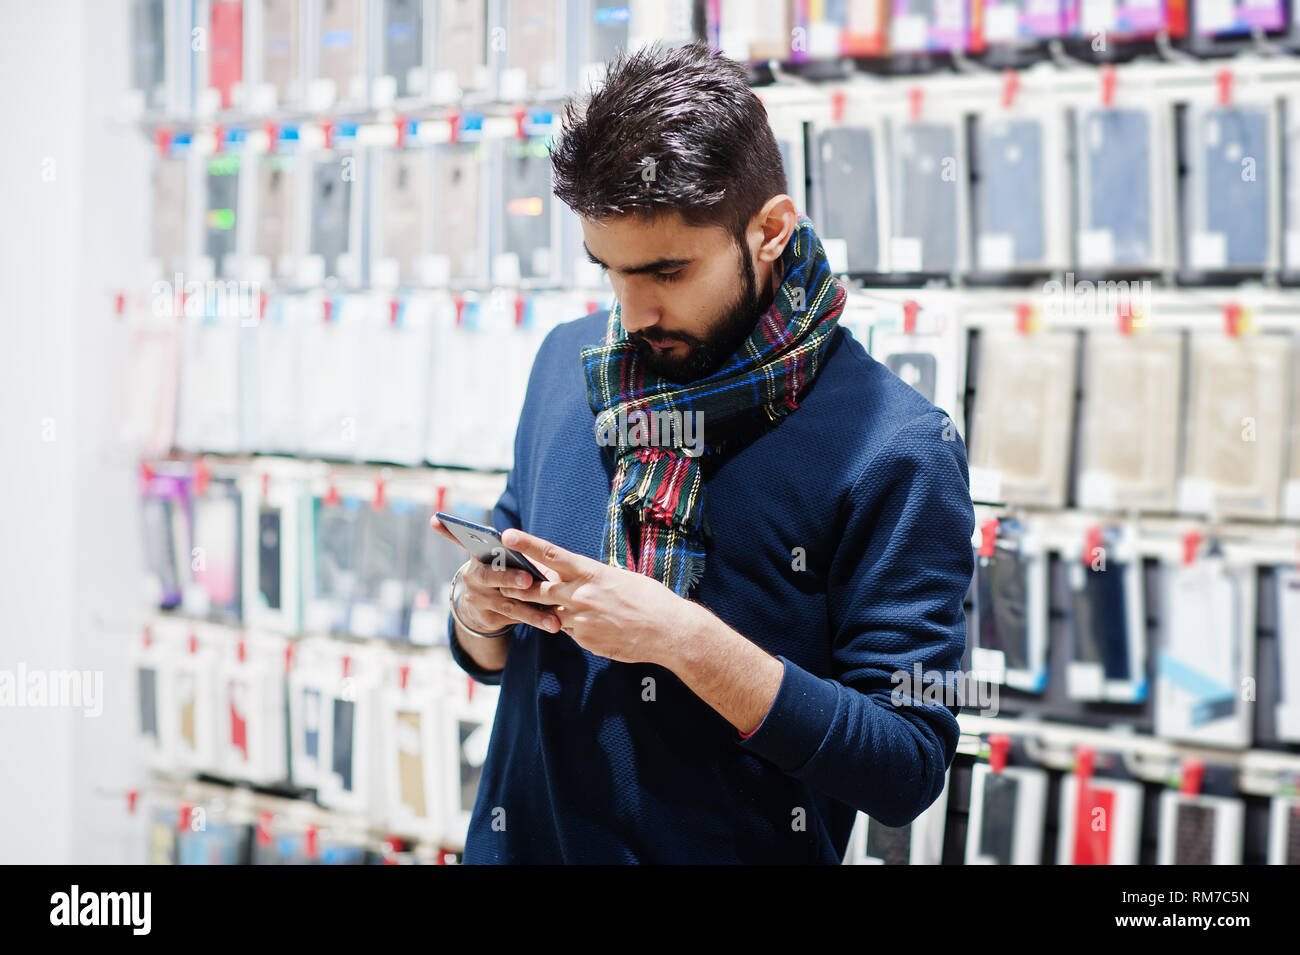 Indian beard man customer buyer at mobile phone store looking on his  smartphone. South asian peoples and technologies concept. Cellphone shop.